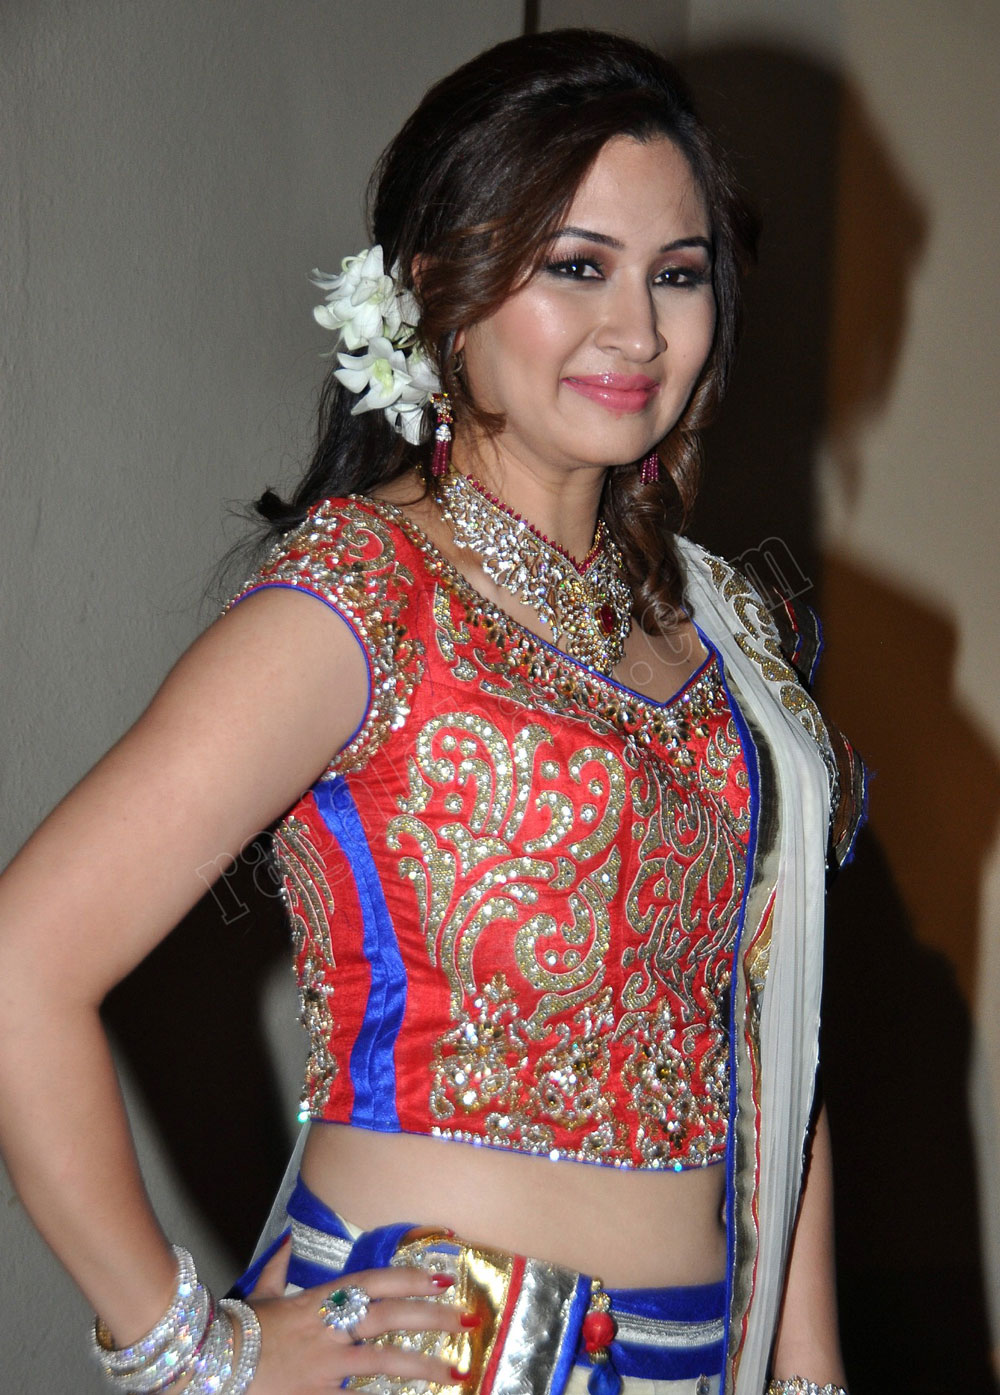 Jwala Gutta Hot Navel http://gallery.cinema65.com/2013/03/jwala-gutta-hot-navel-show-photos.html